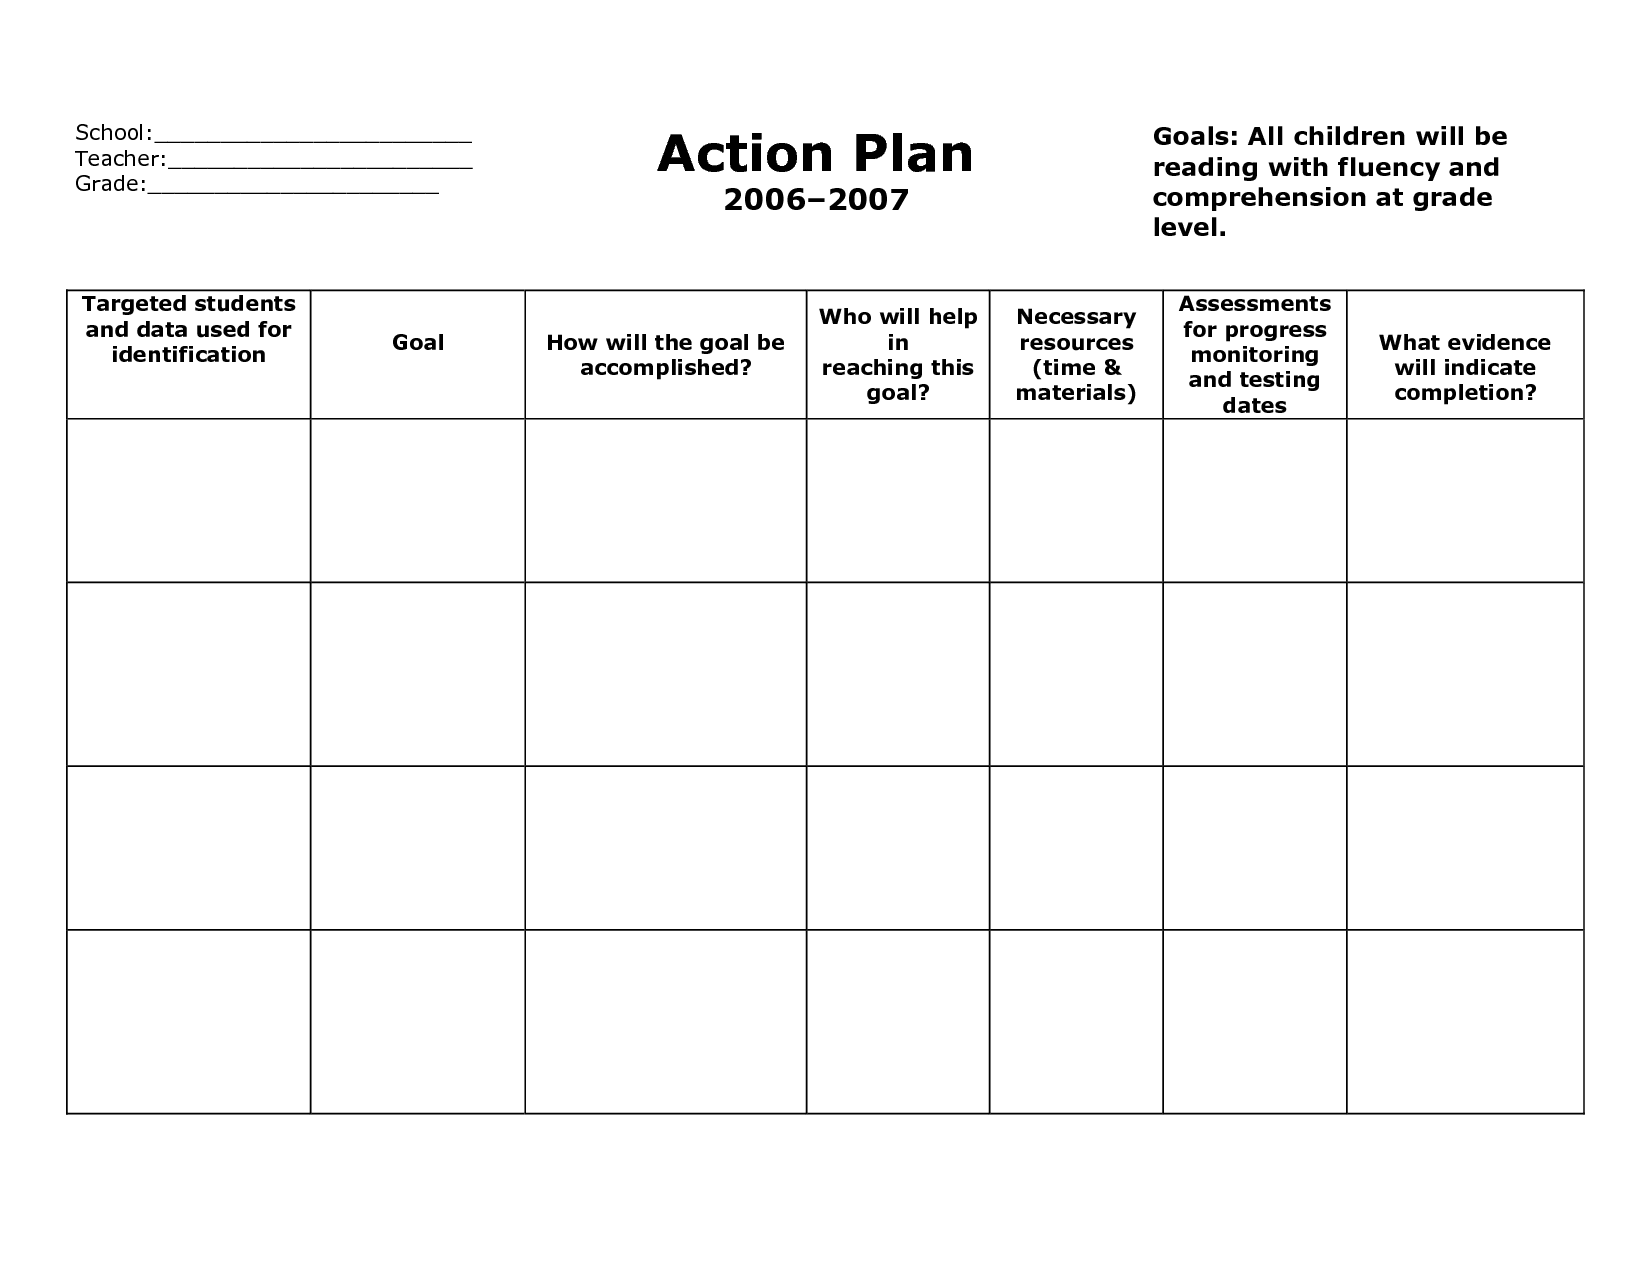 Action Plan Template Action Plan Format v5FCLyv5 – Action Plans Template